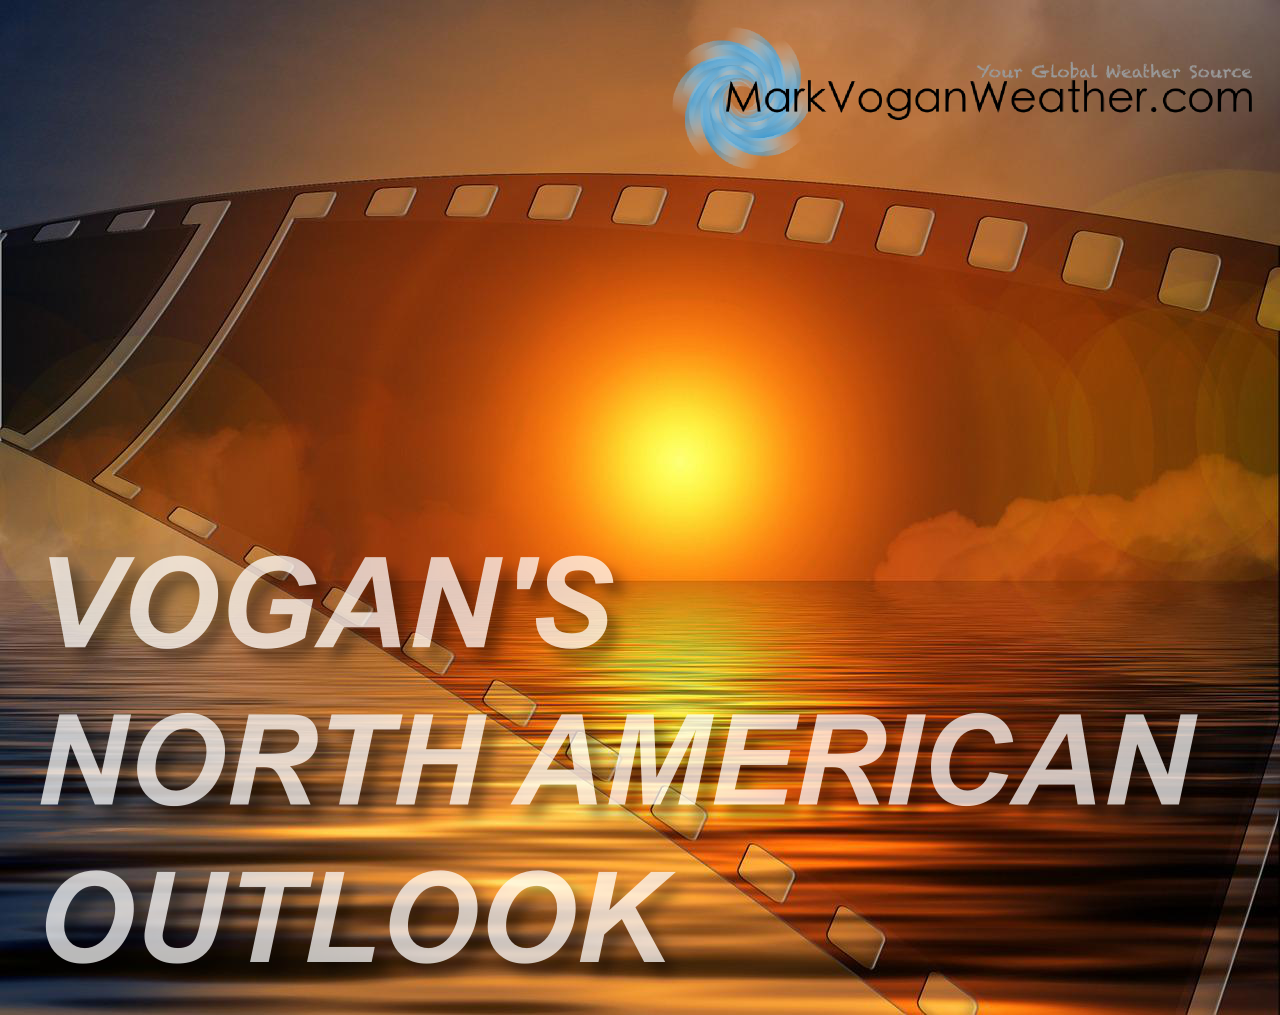 SUN 4 MAY: VOGAN'S NORTH AMERICAN OUTLOOK